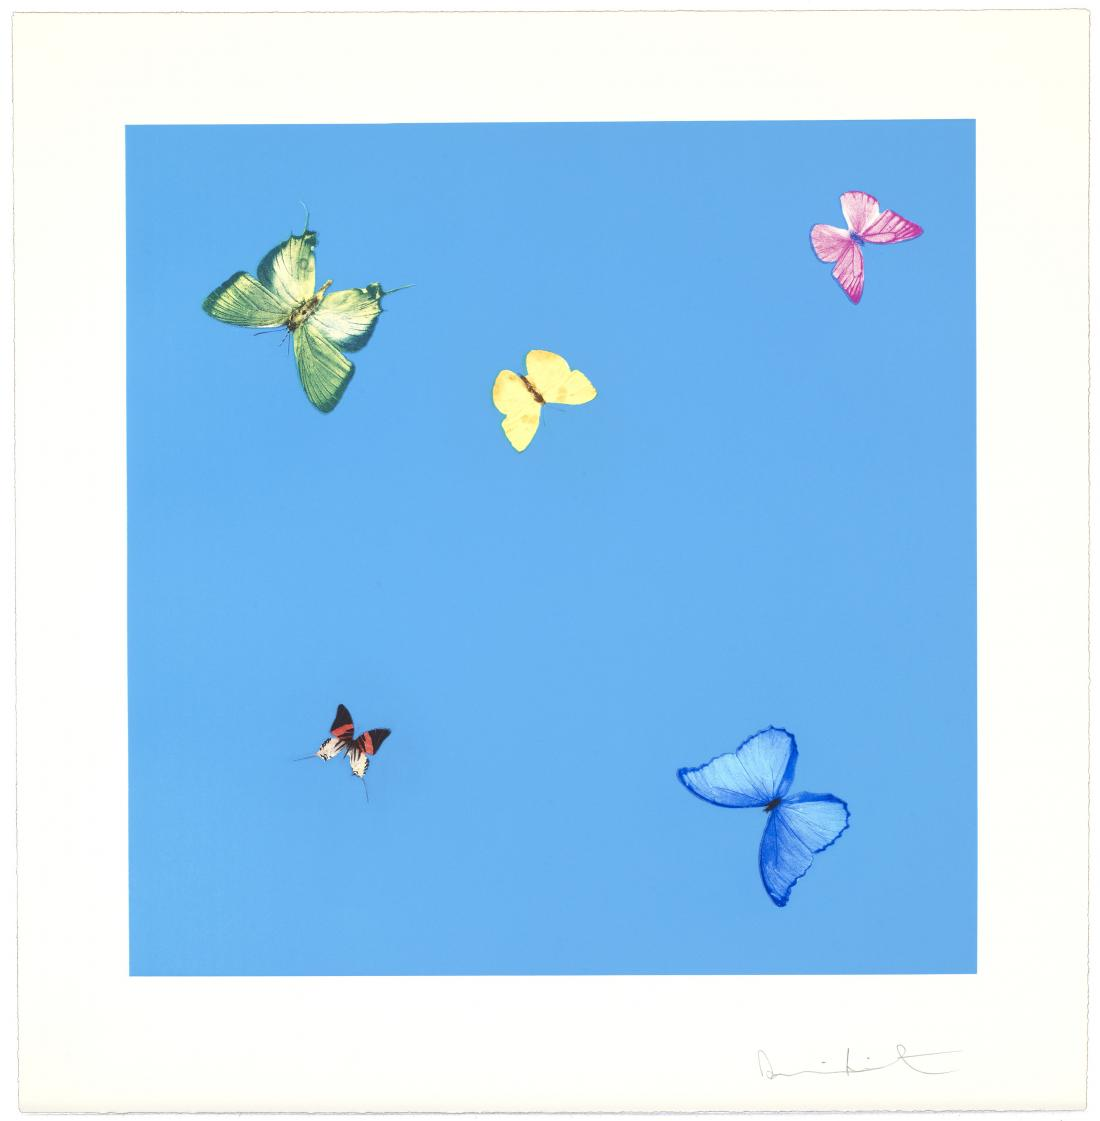 A Dream by Damien Hirst